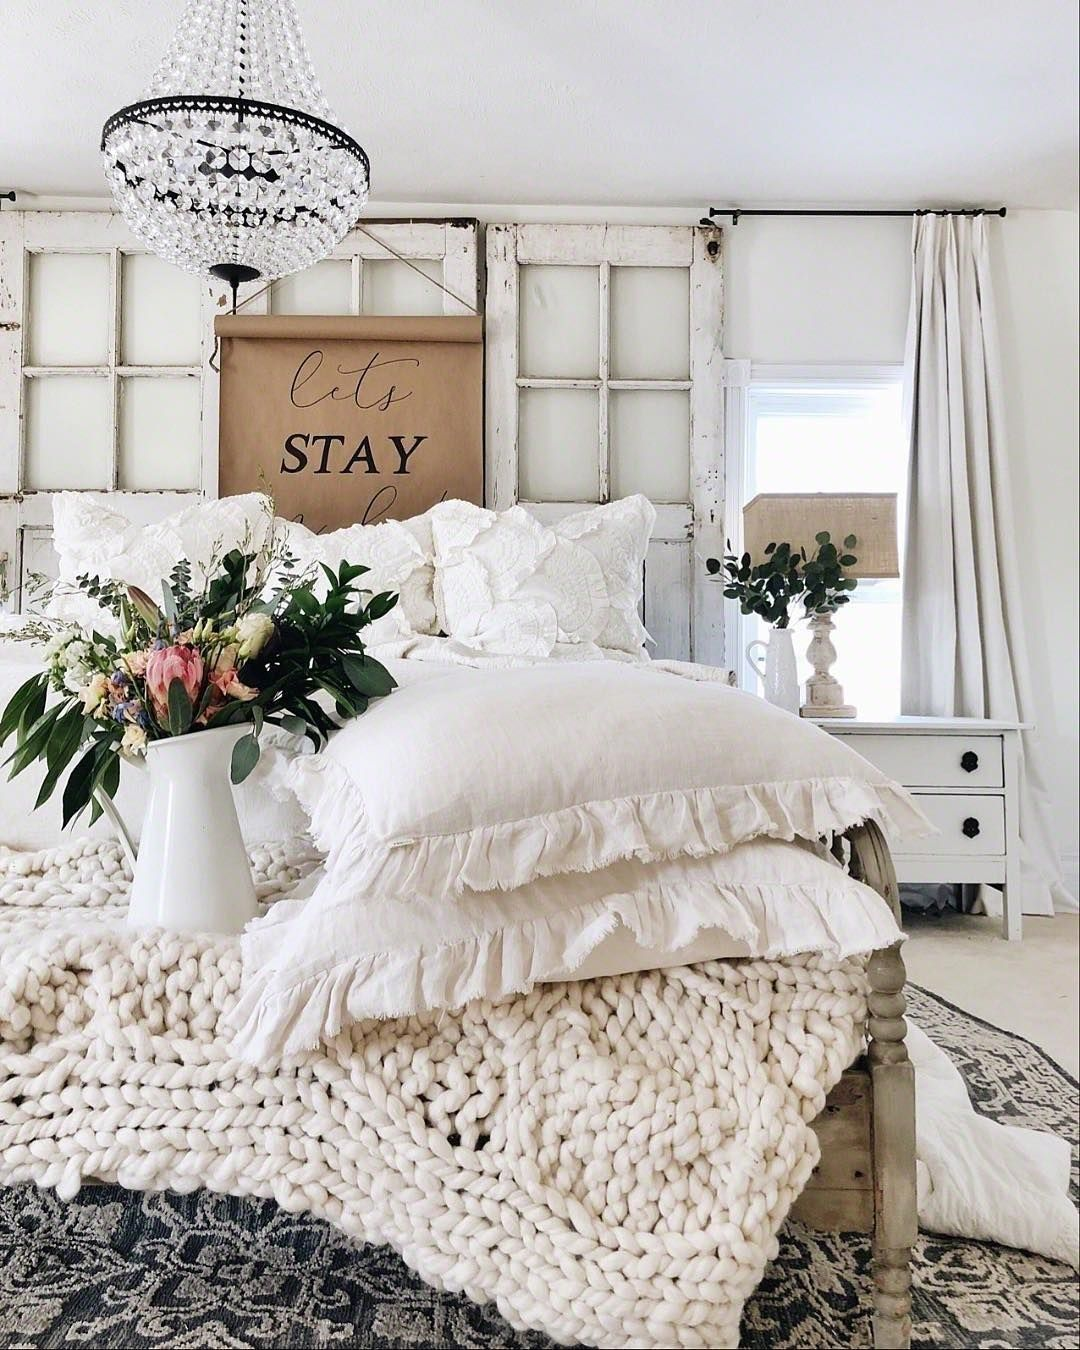 35 Awesome Farmhouse Bedroom Design And Decor Ideas Country Bedroom Decor French Country Decorating Bedroom Home Decor Bedroom